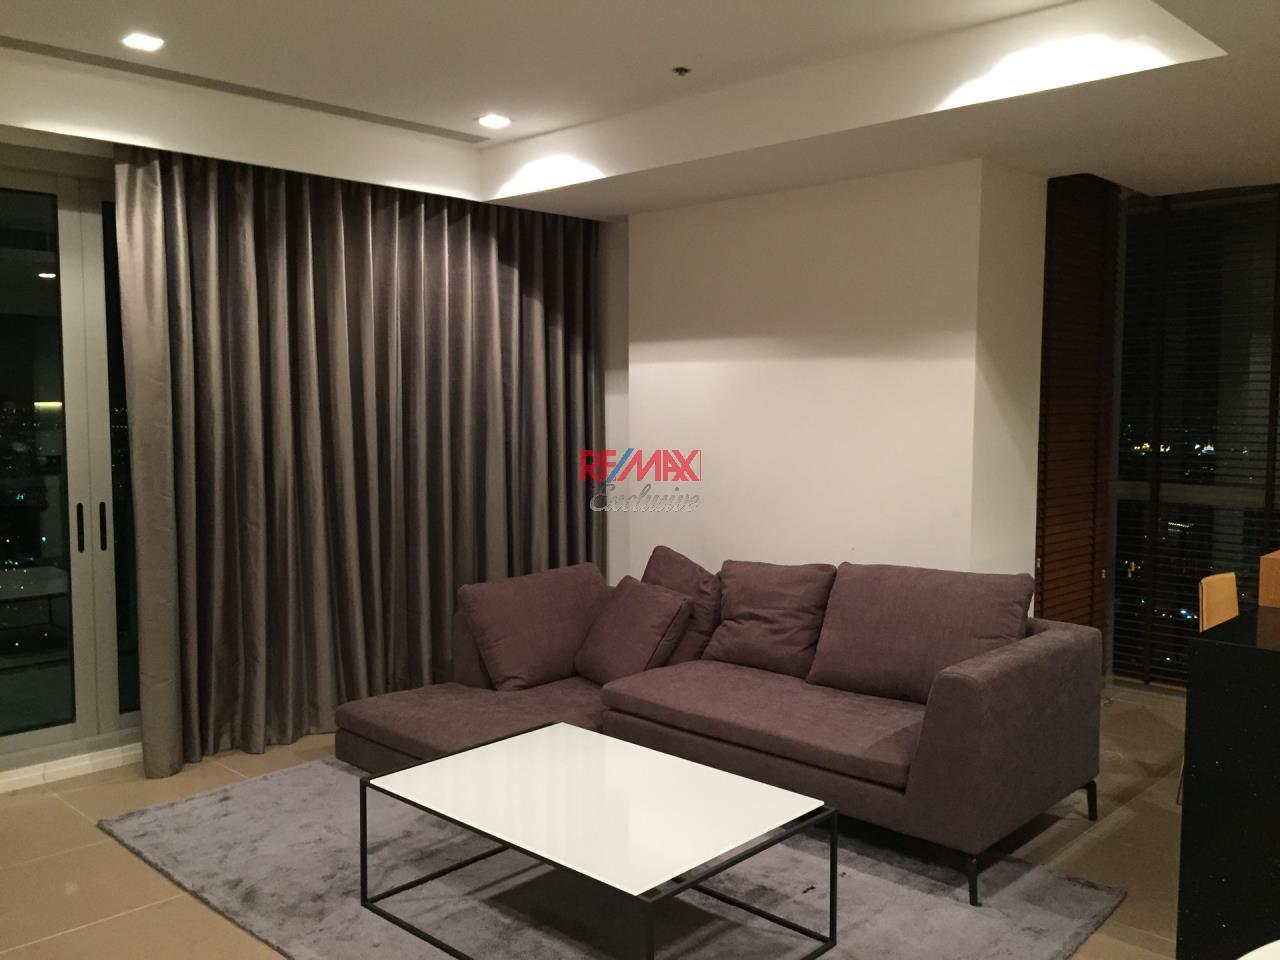 RE/MAX Exclusive Agency's The River Condo 2 Bedrooms, 110 Sqm., Corner Unit Facing Peninsular View For Sale 26,900,000 THB 1